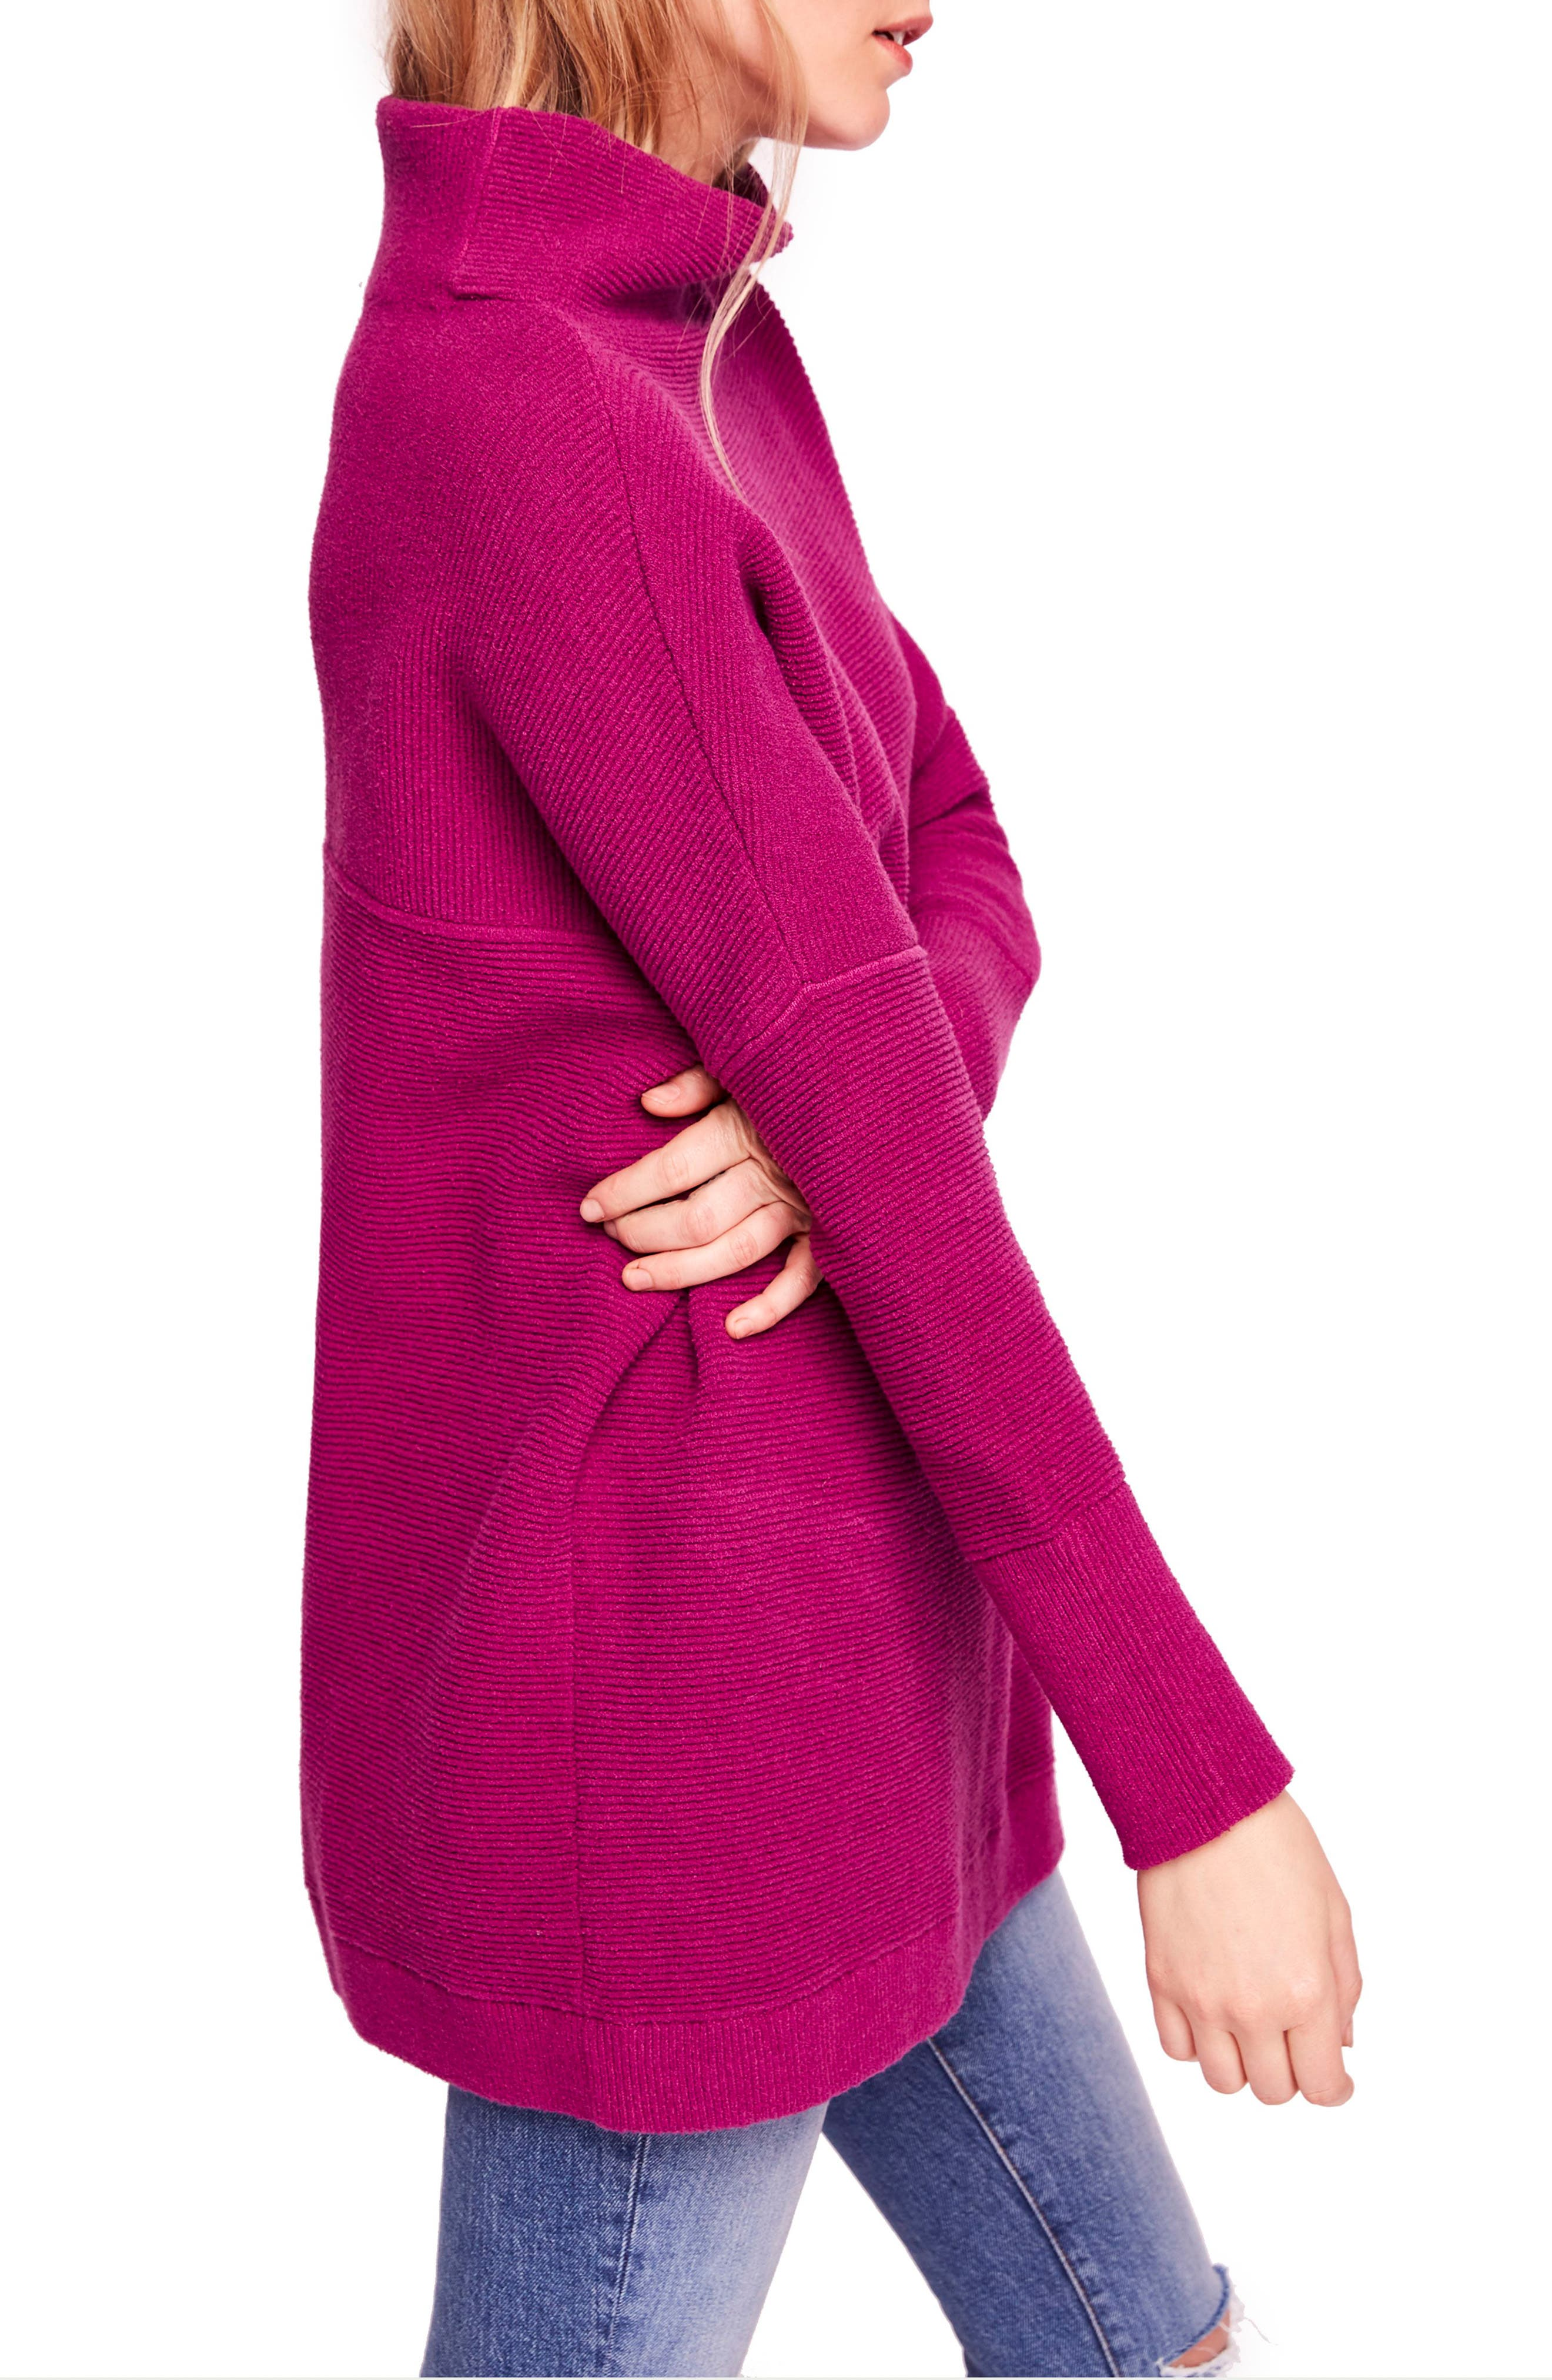 Ottoman Slouchy Tunic,                             Alternate thumbnail 3, color,                             931